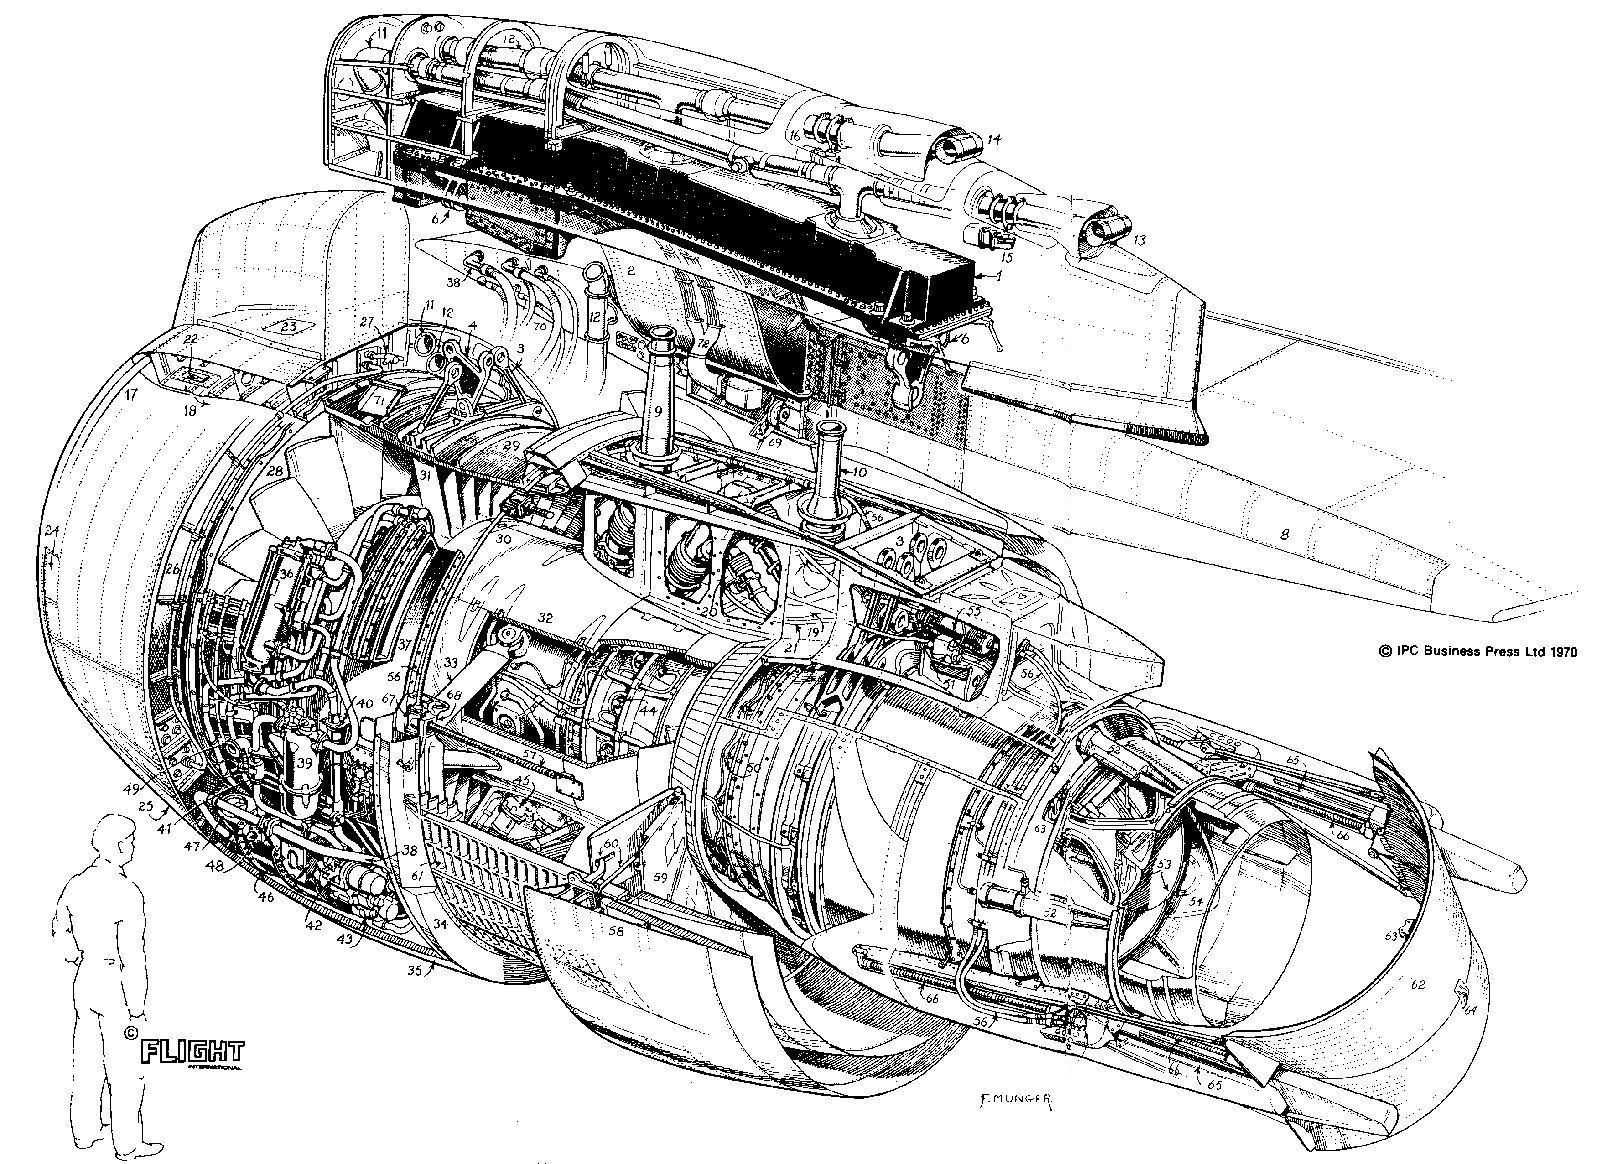 Engineering Graphic Drawing Airbus A320